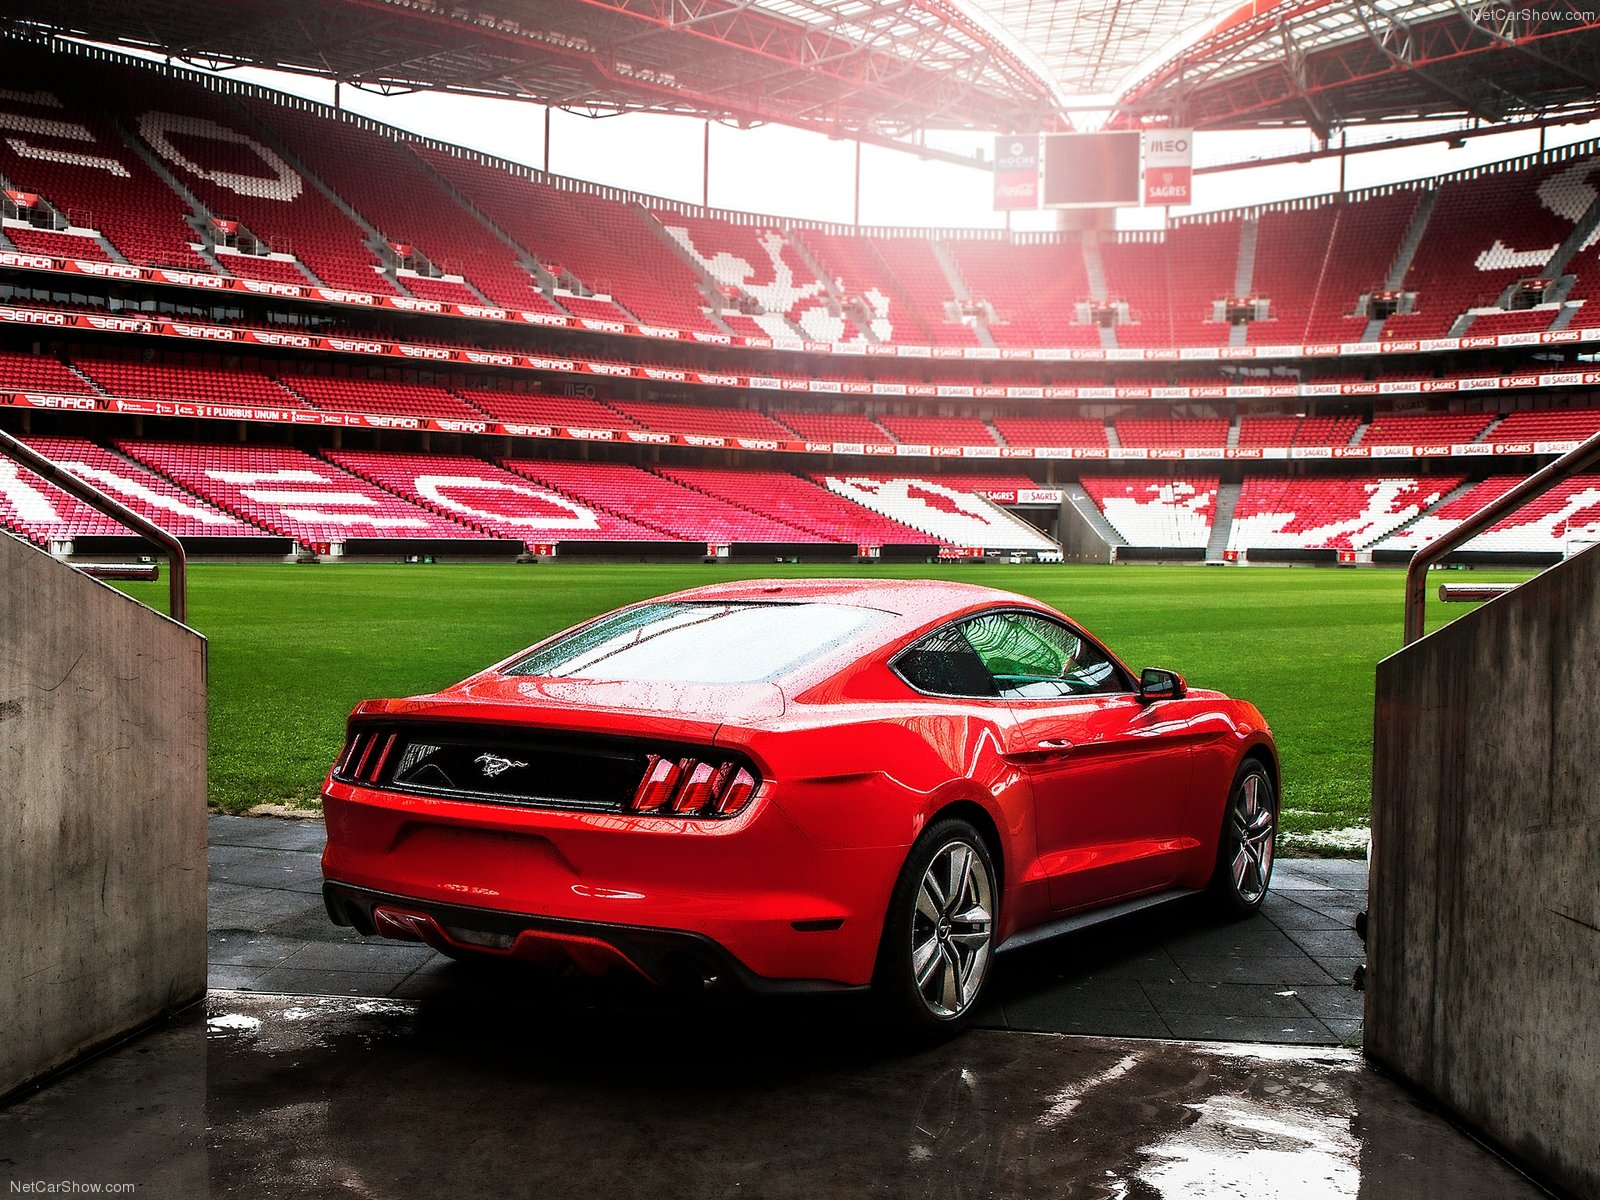 2015 Mustang Wheels >> 3DTuning of Mustang GT Coupe 2015 3DTuning.com - unique on-line car configurator for more than ...